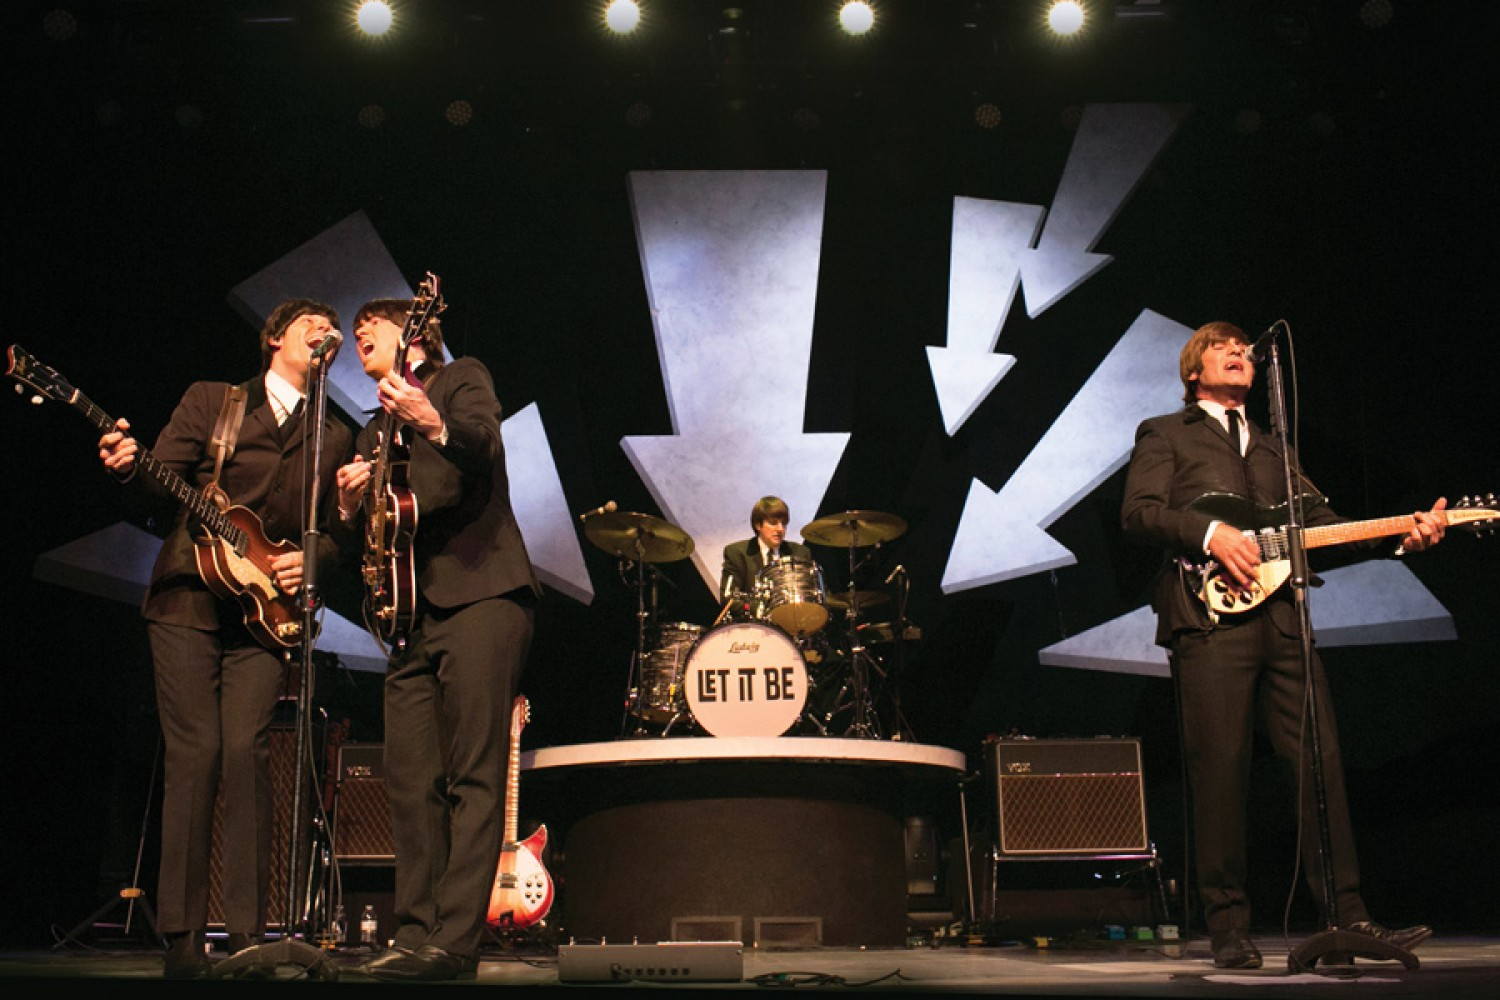 let it be analysis the beatles Let it be has been a source of frustration for legions of beatles fans since its  release back in 1970 its critics, with paul mccartney among them,.